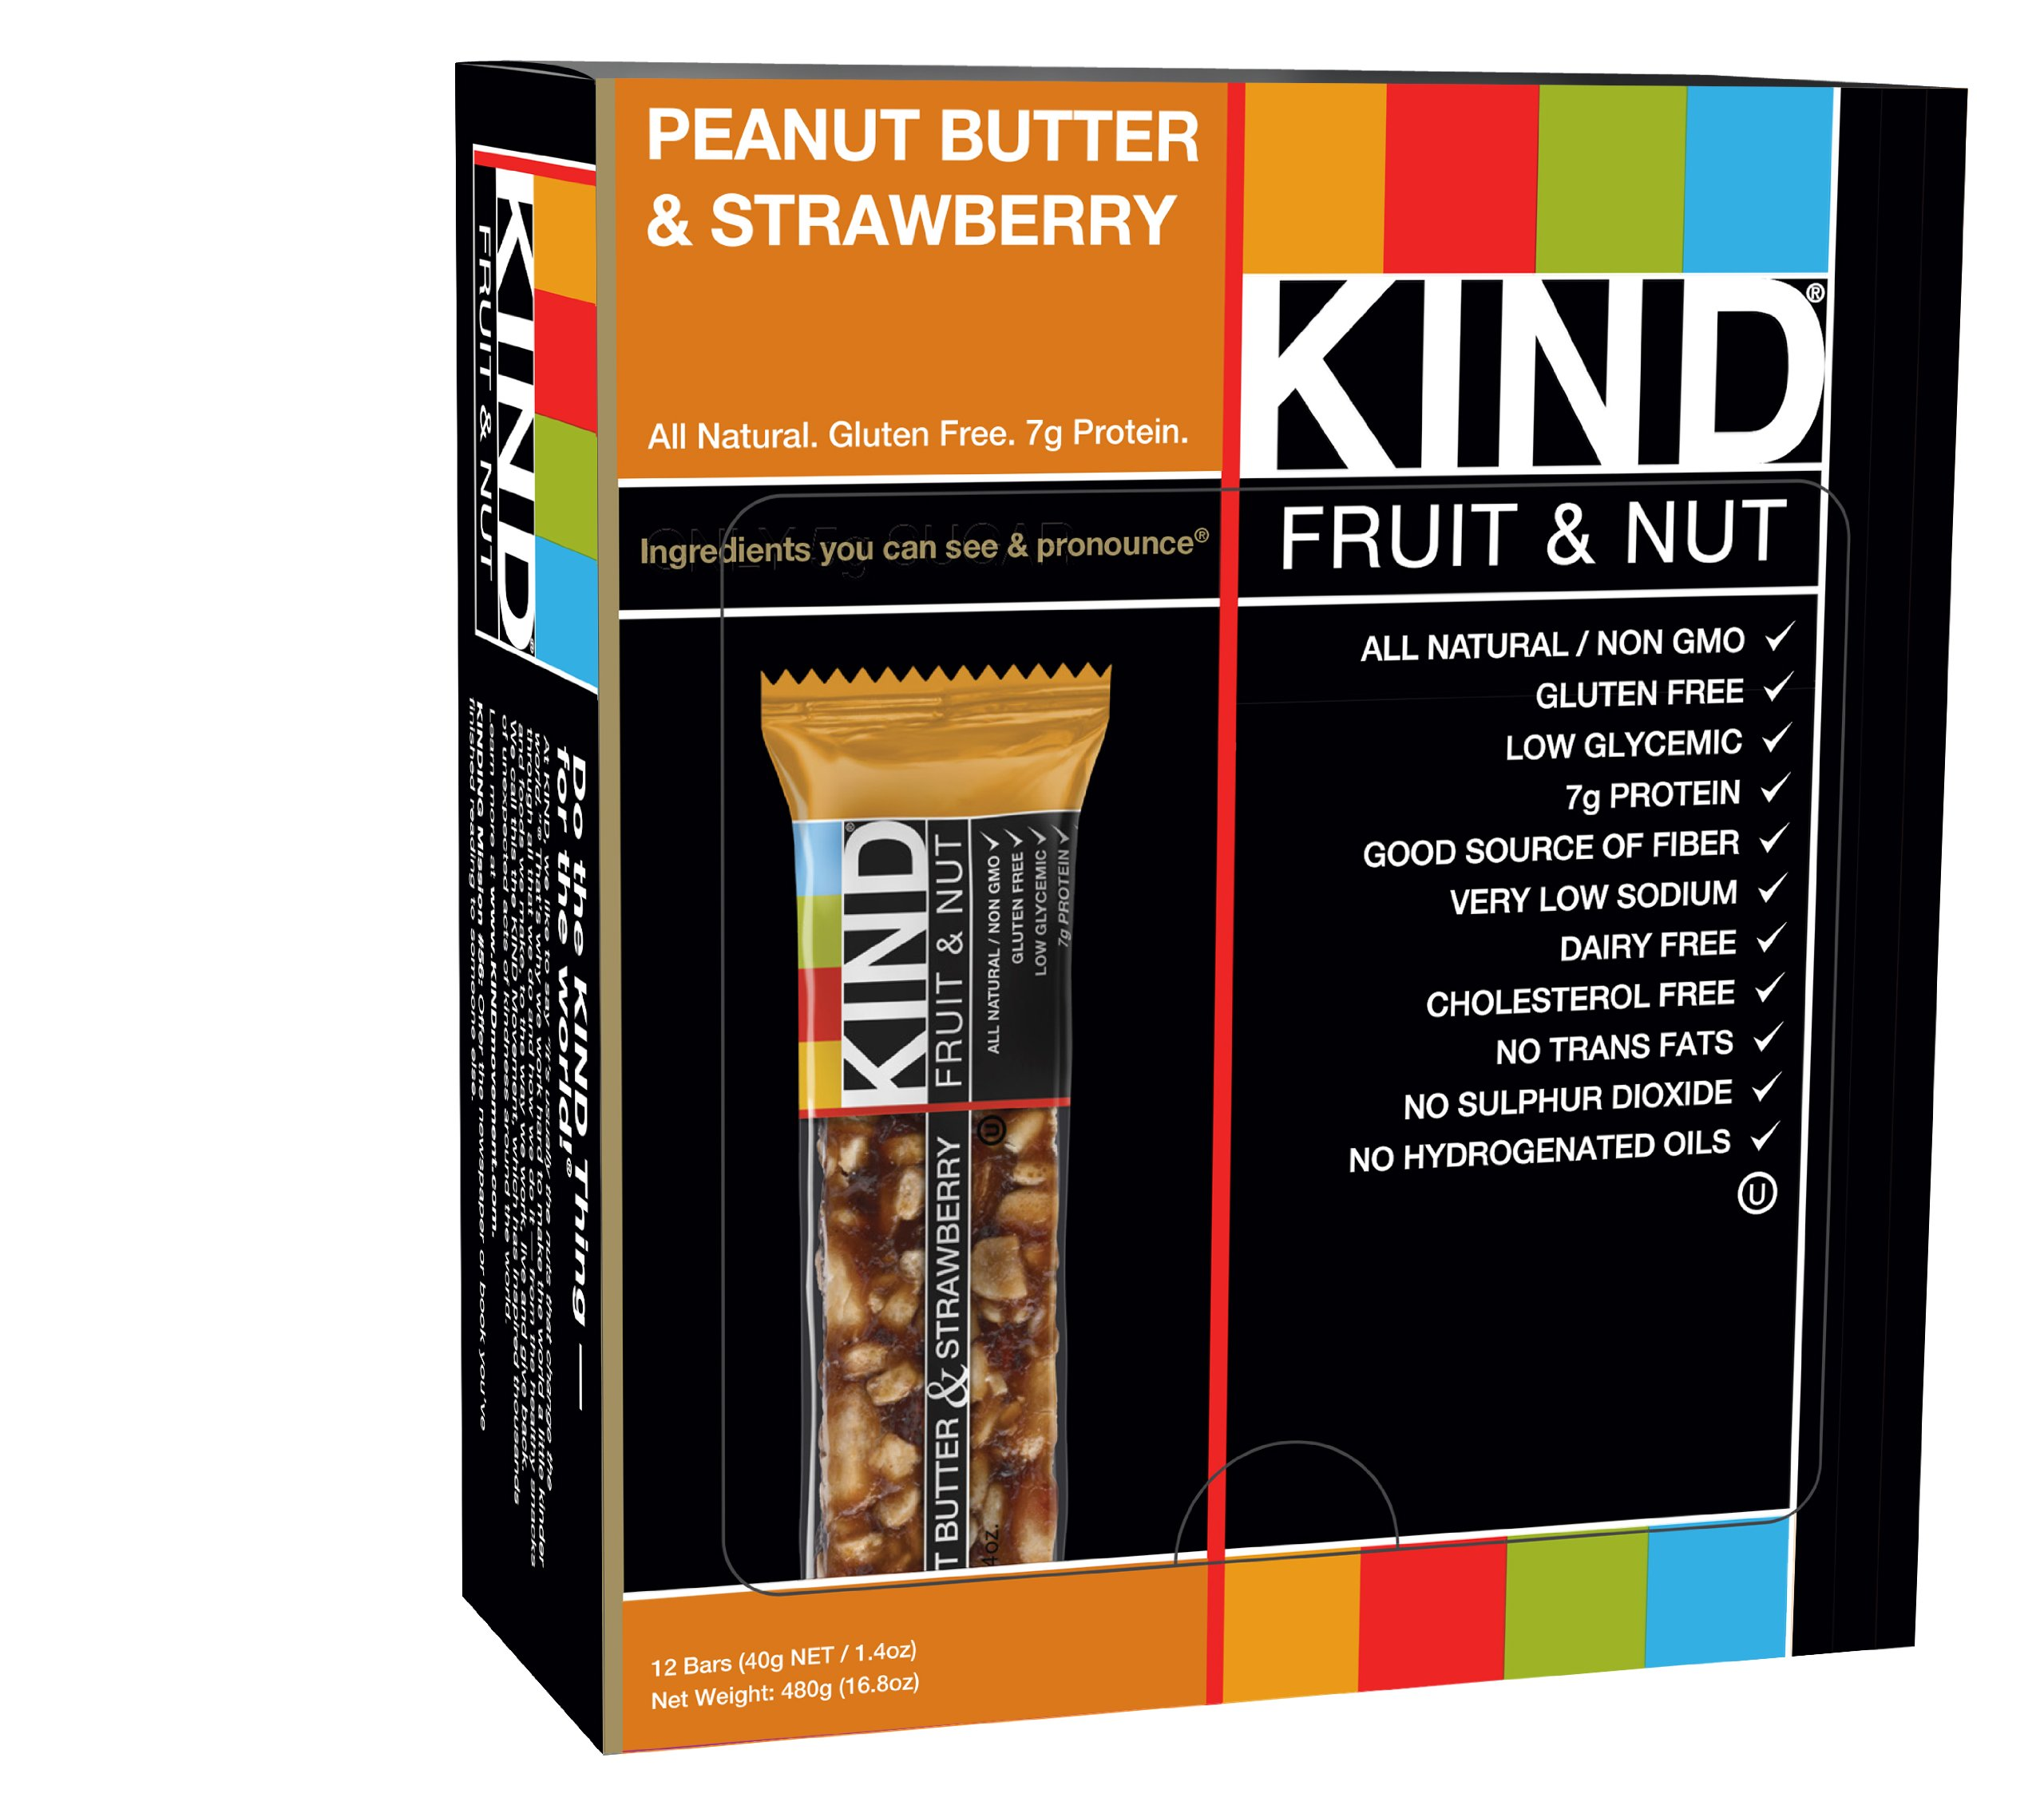 KIND Bars, Peanut Butter & Strawberry, Gluten Free, 1.4oz, 12 Count